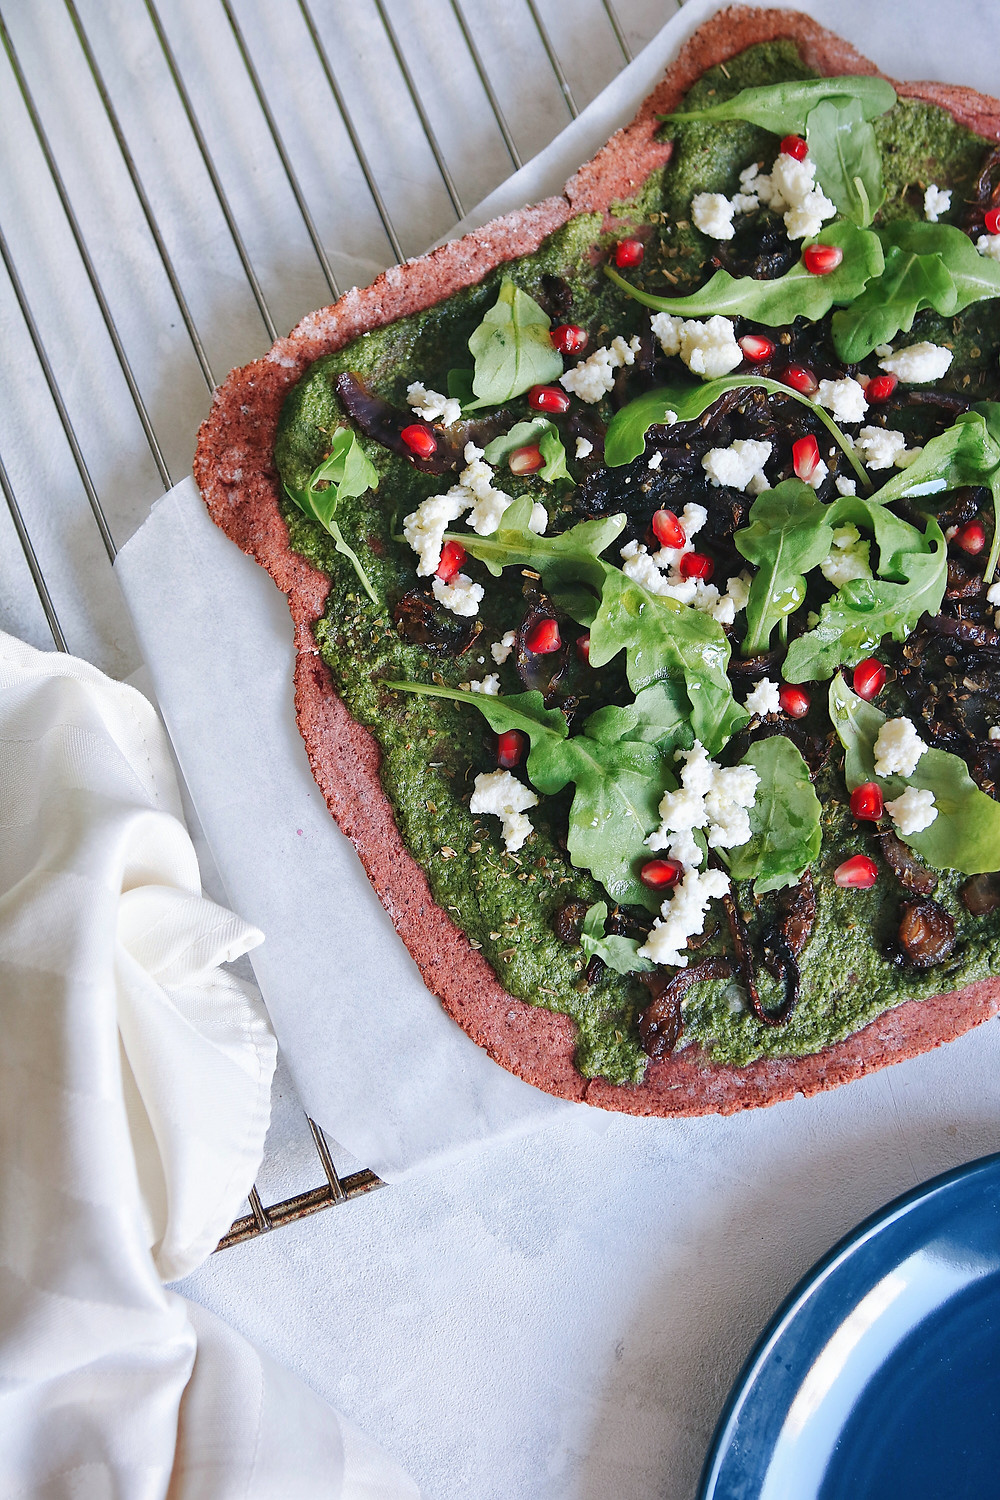 A view of the gluten free beetroot crust pizza.